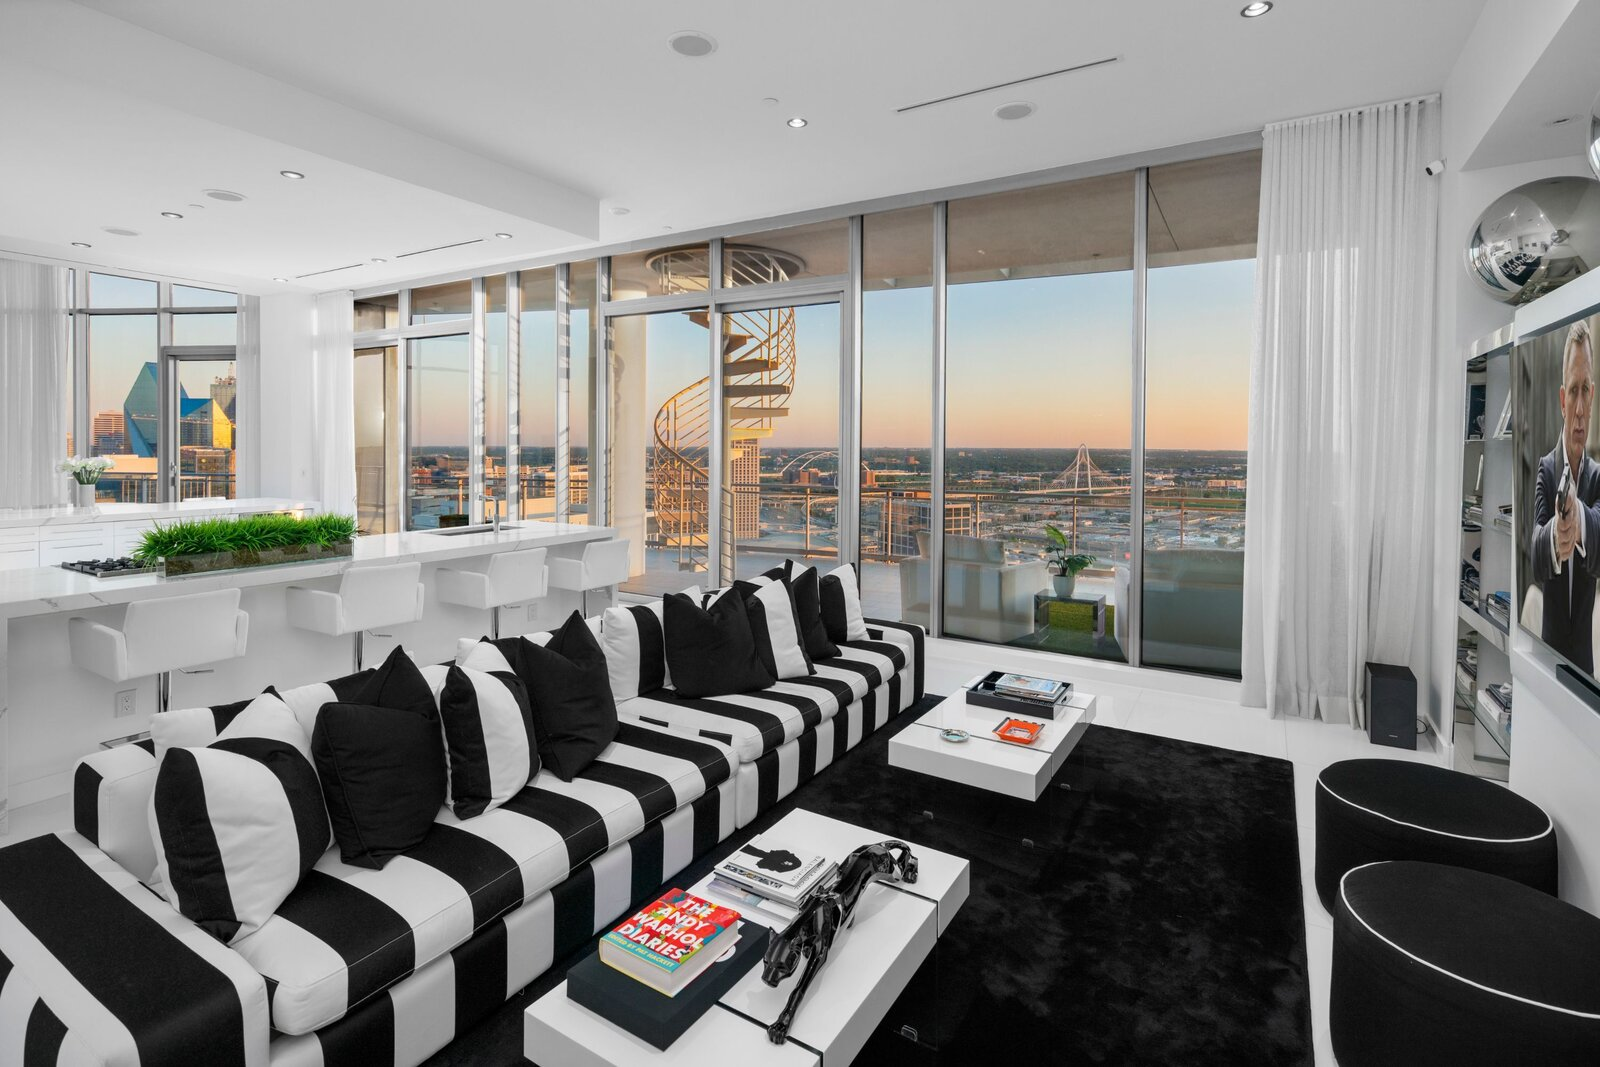 Photo 3 of 10 in An Indoor/Outdoor Penthouse With Downtown Dallas Views Wants $5.7M